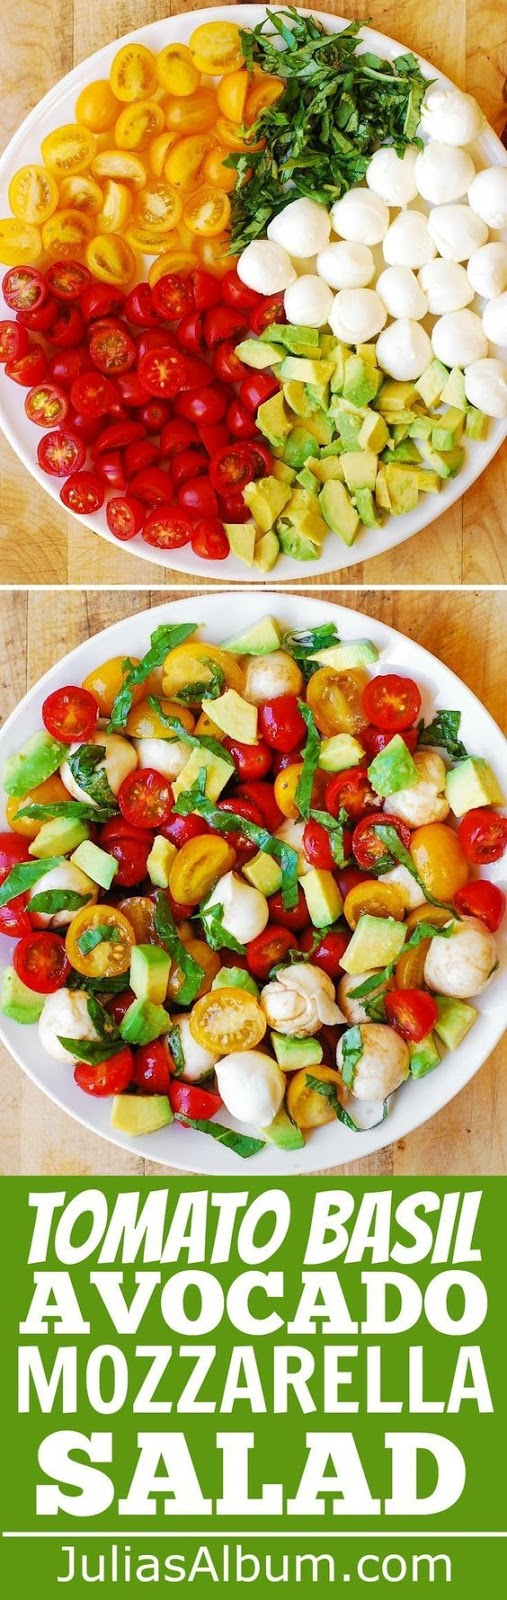 This recipe is simple and uses just a few ingredients: tomatoes, fresh basil, avocado, Mozzarella cheese, and easy homemade balsamic dressing.  Healthy and delicious!   Makes a great side dish to all kinds of grilled meats and fish